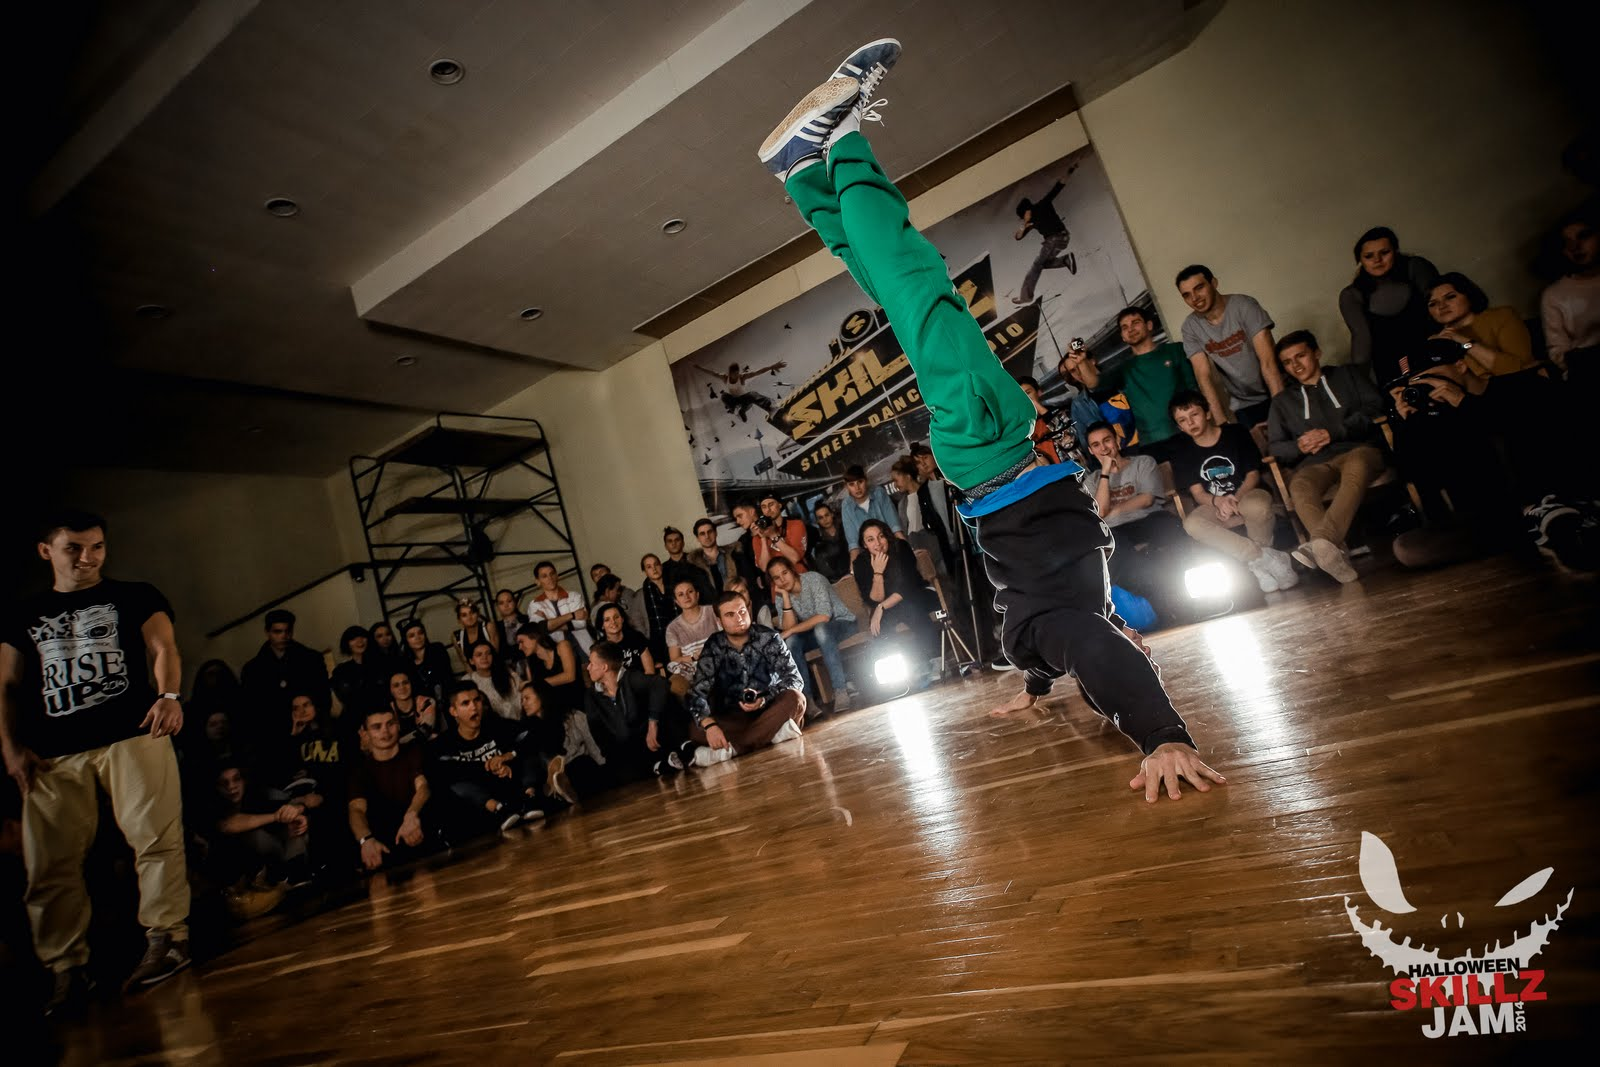 SKILLZ Halloween Jam Battles - a_MG_6109.jpg